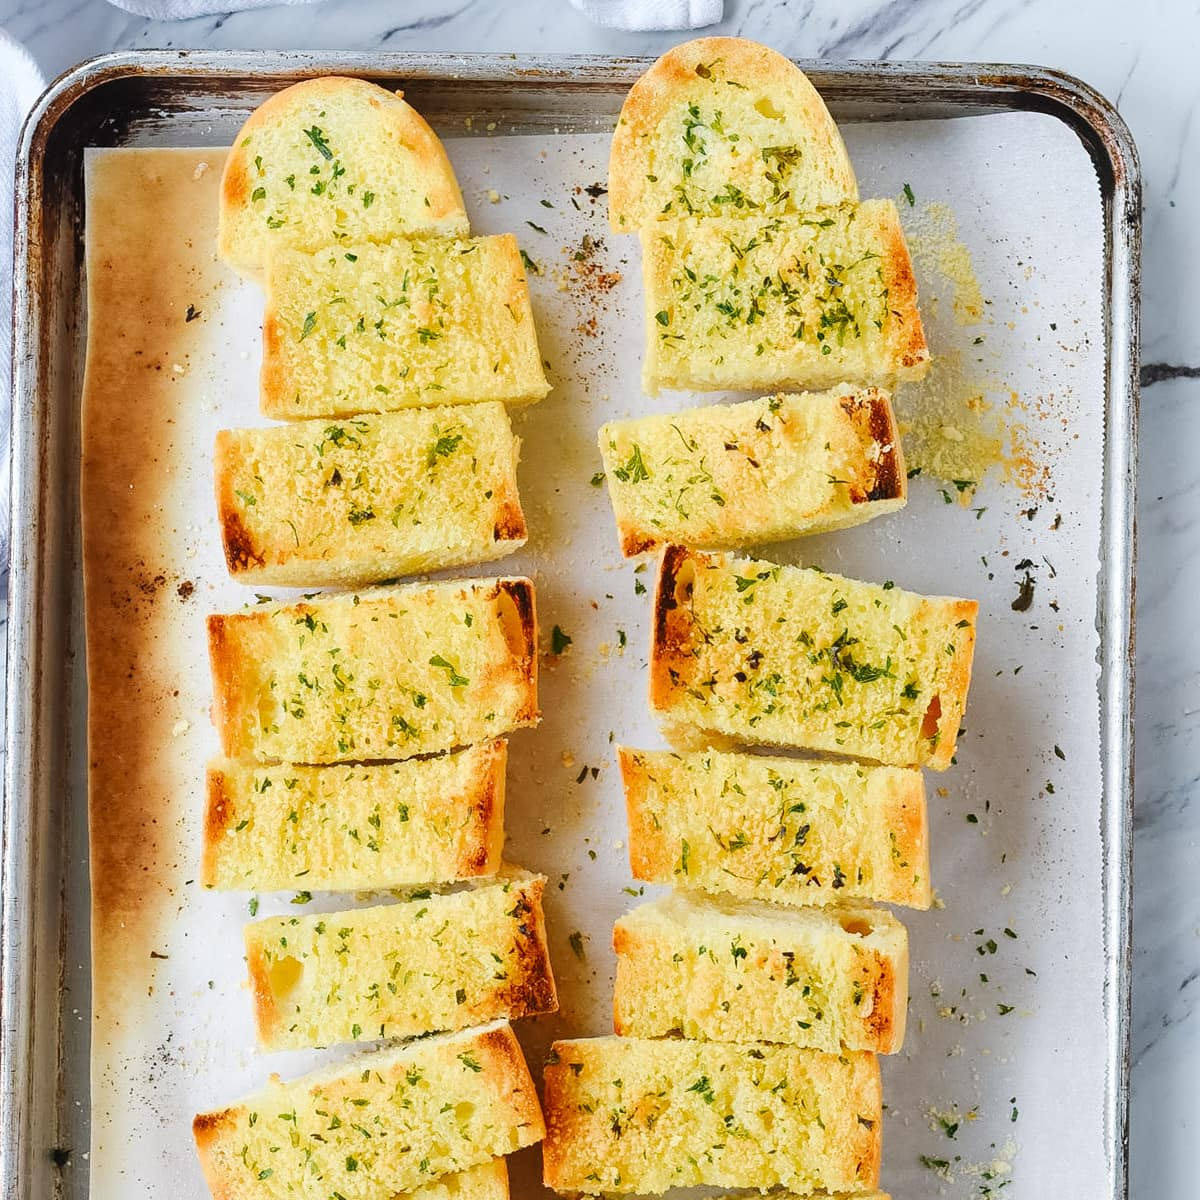 Easy Garlic Bread Recipe 10 Minutes By Leigh Anne Wilkes